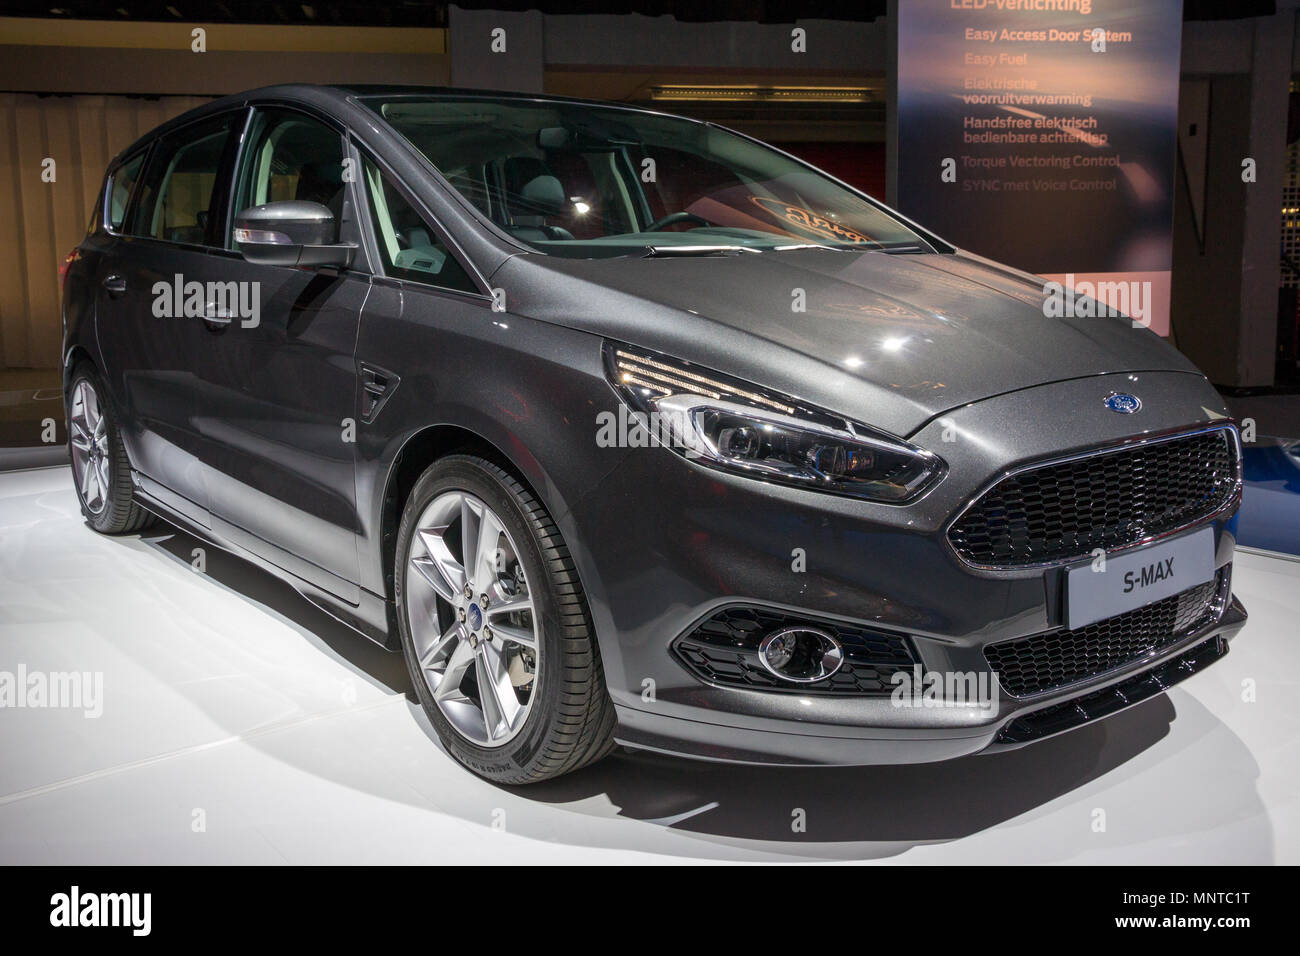 AMSTERDAM - APRIL 16, 2015: Ford S-MAX car showcased at the AutoRAI Motor Show. - Stock Image